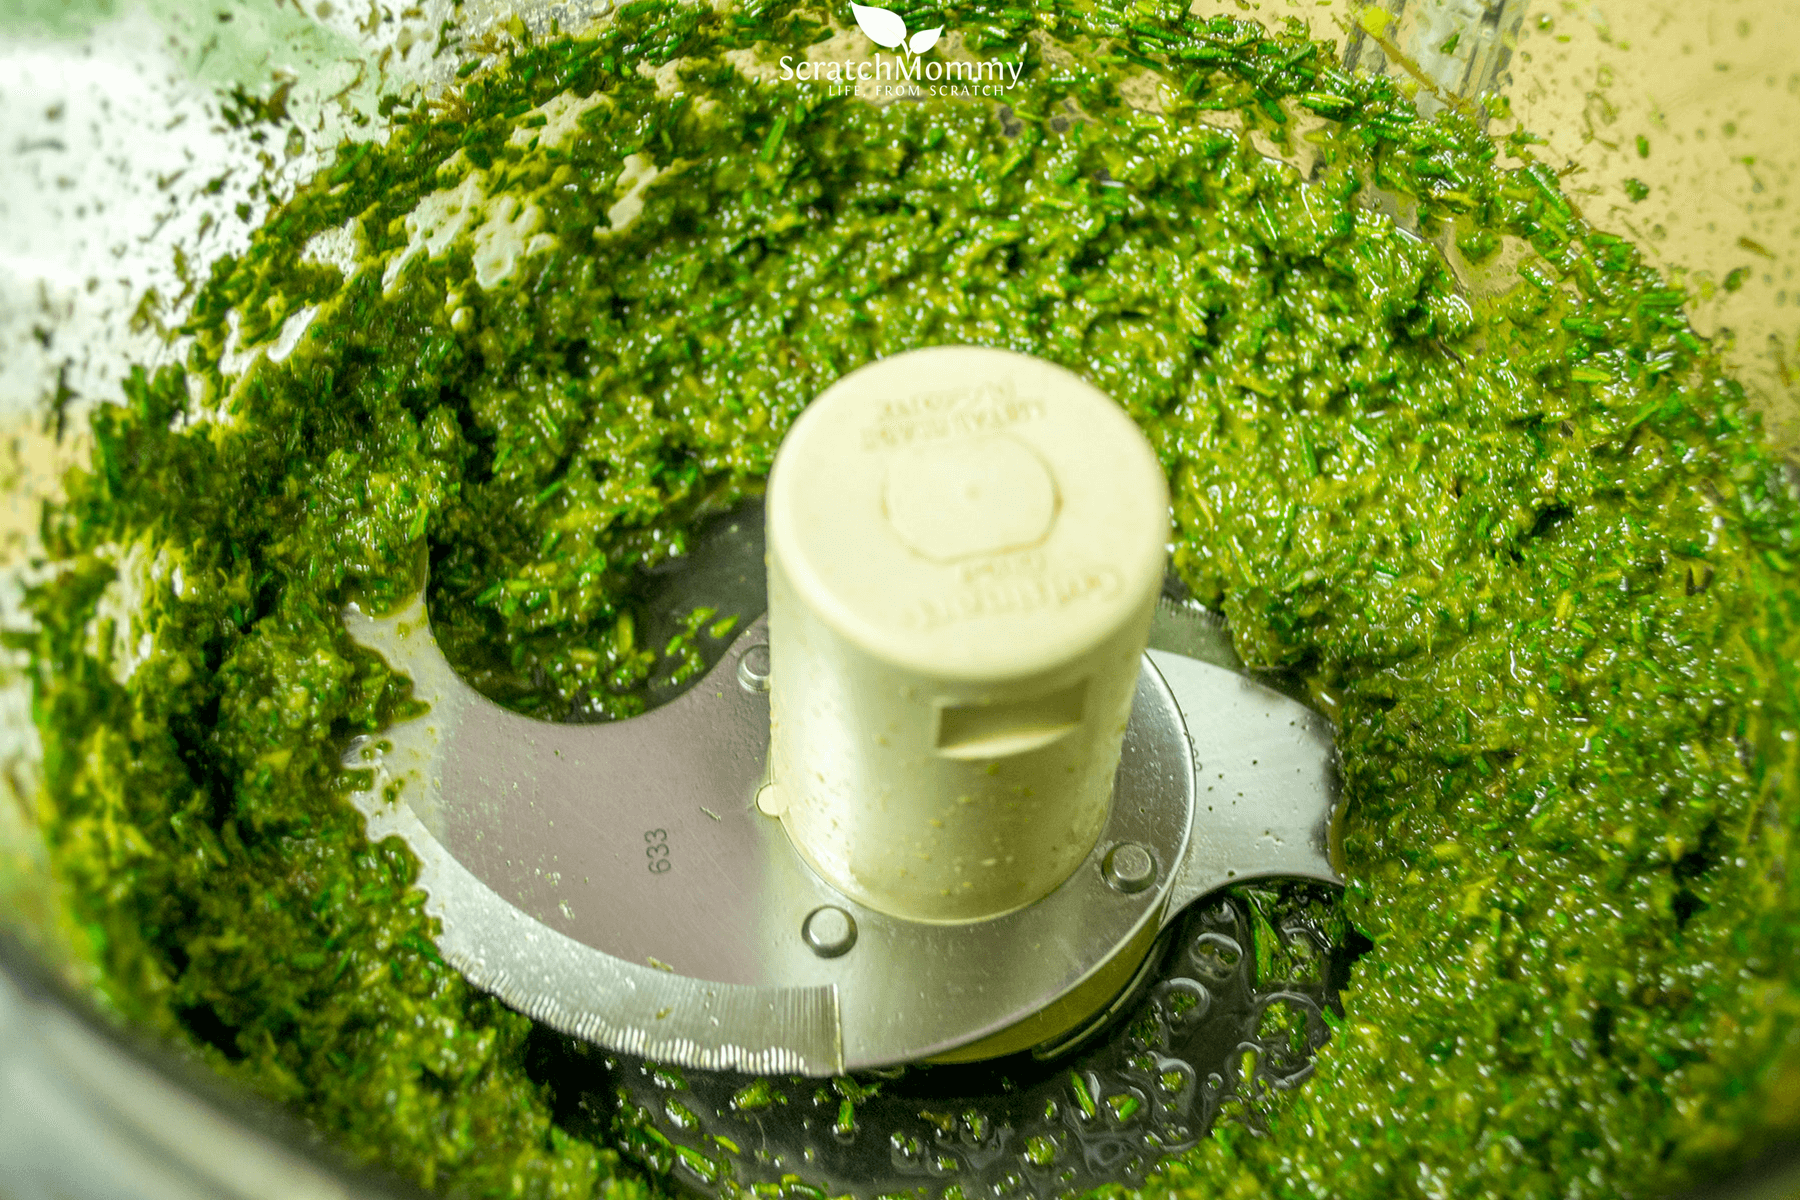 Easily turn your herbs into pesto as a brilliant way to preserve them, and always have it on hand to use quickly!- Scratch Mommy